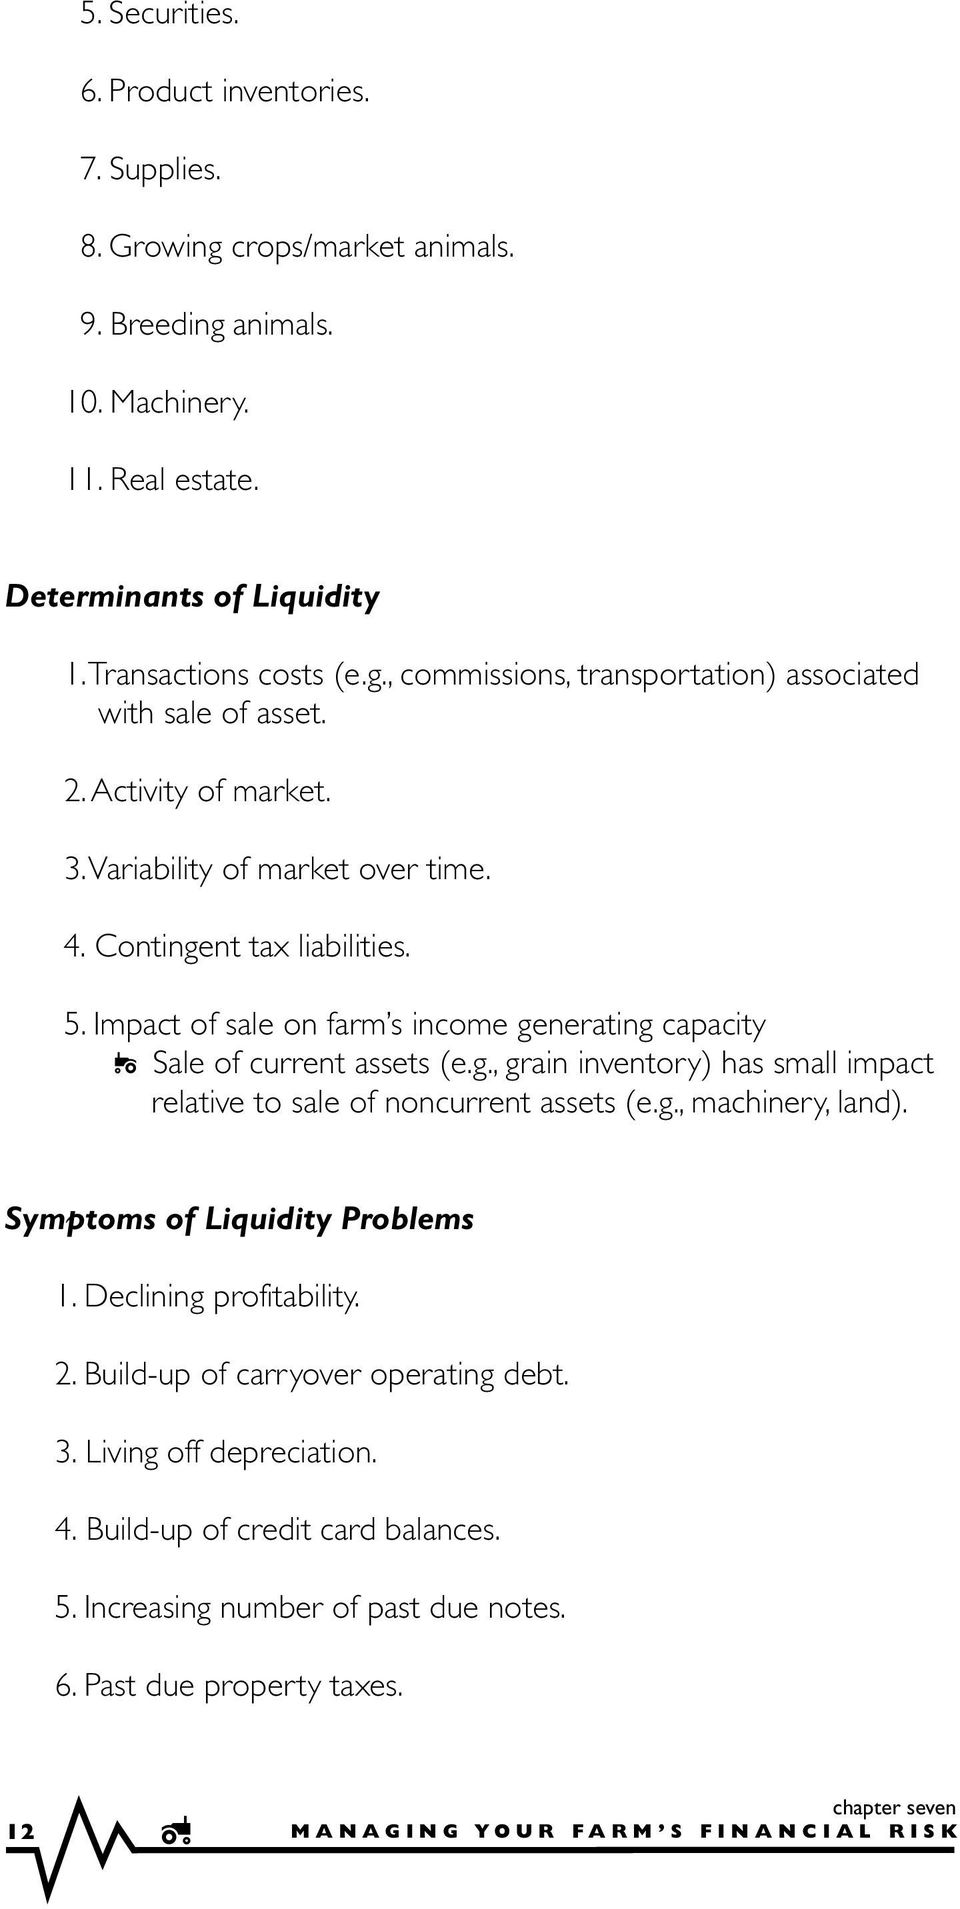 g., machinery, land). Symptoms of Liquidity Problems 1. Declining profitability. 2. Build-up of carryover operating debt. 3. Living off depreciation. 4. Build-up of credit card balances. 5.